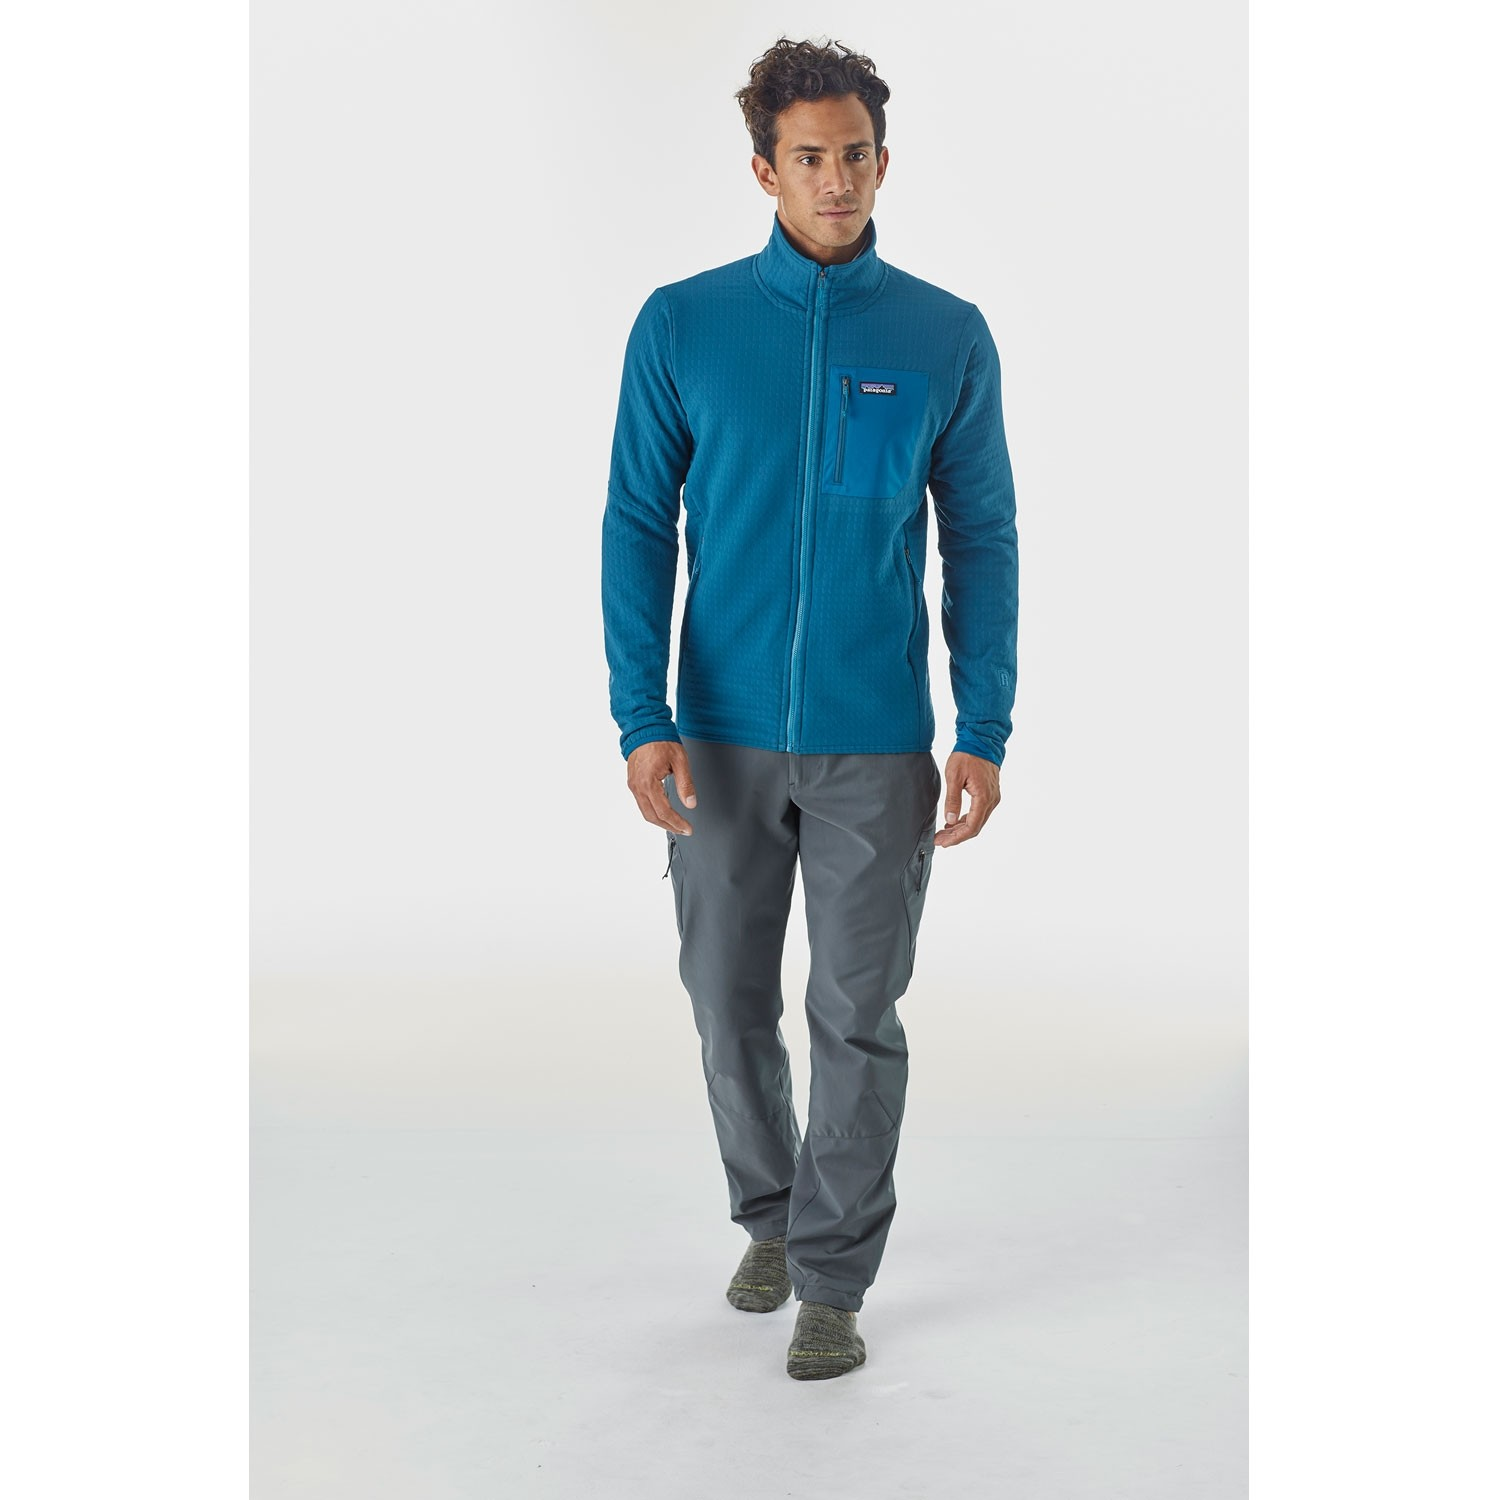 Patagonia R2 TechFace Jacket - Big Sur Blue